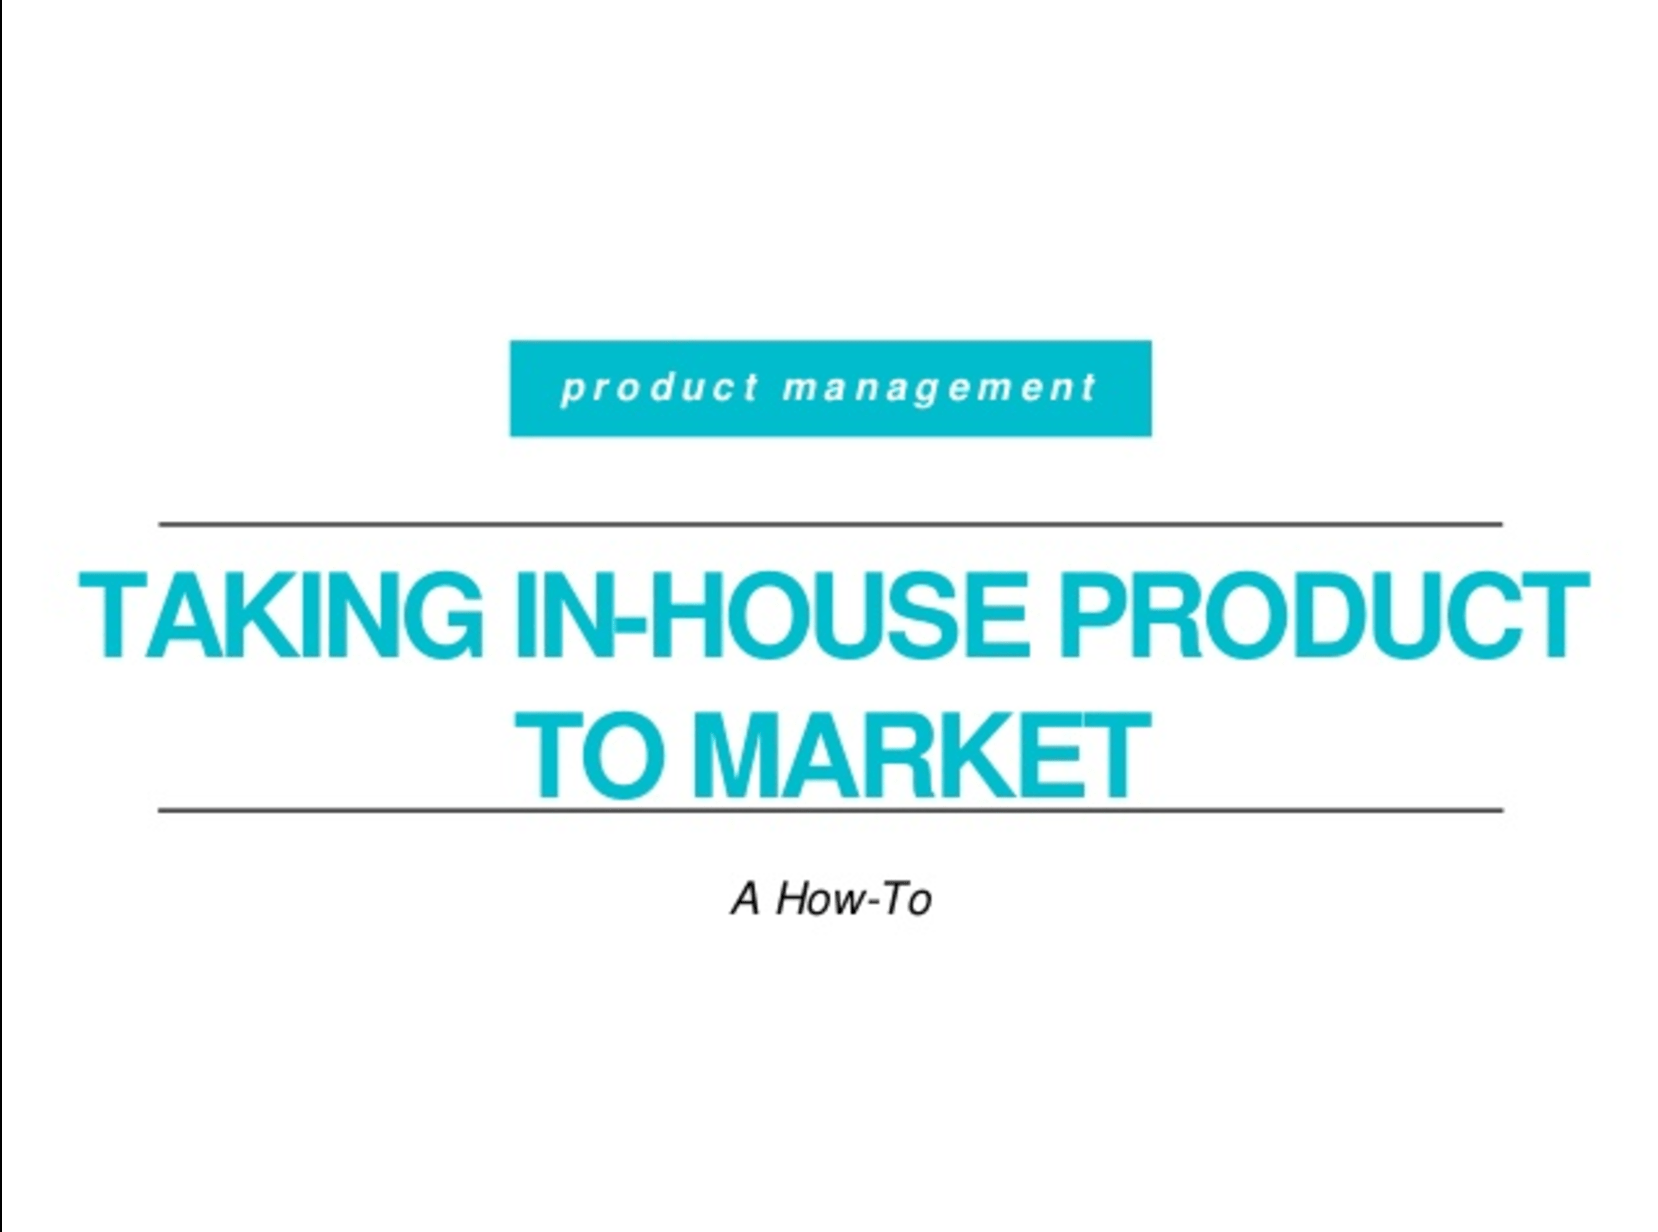 taking-in-house-product-to-market-feature